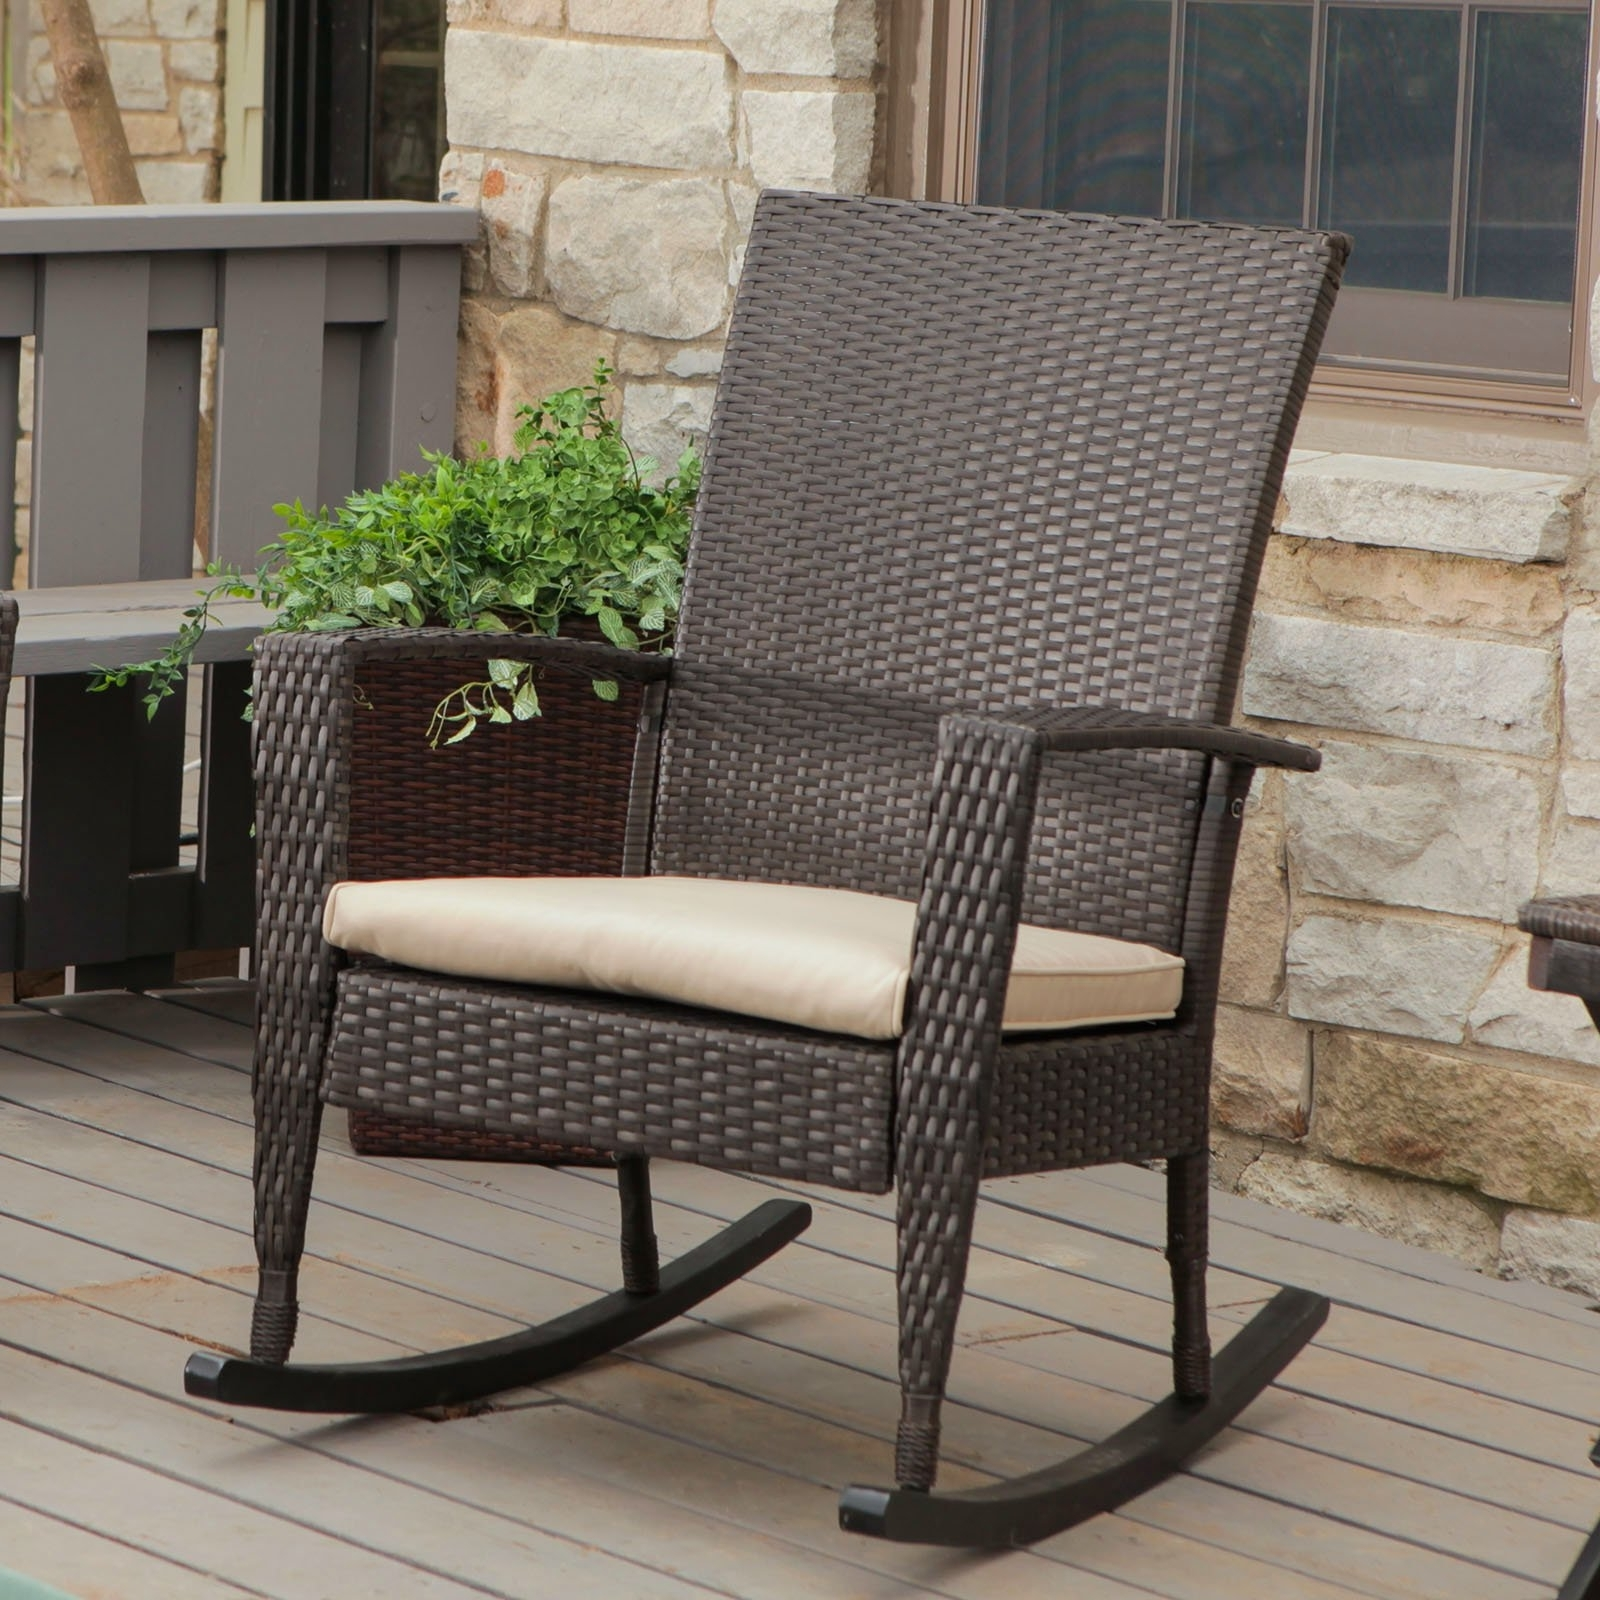 Decorating Modern Lawn Chairs Modern Balcony Furniture Modern Patio For Most Popular Patio Rocking Chairs And Table (View 4 of 15)